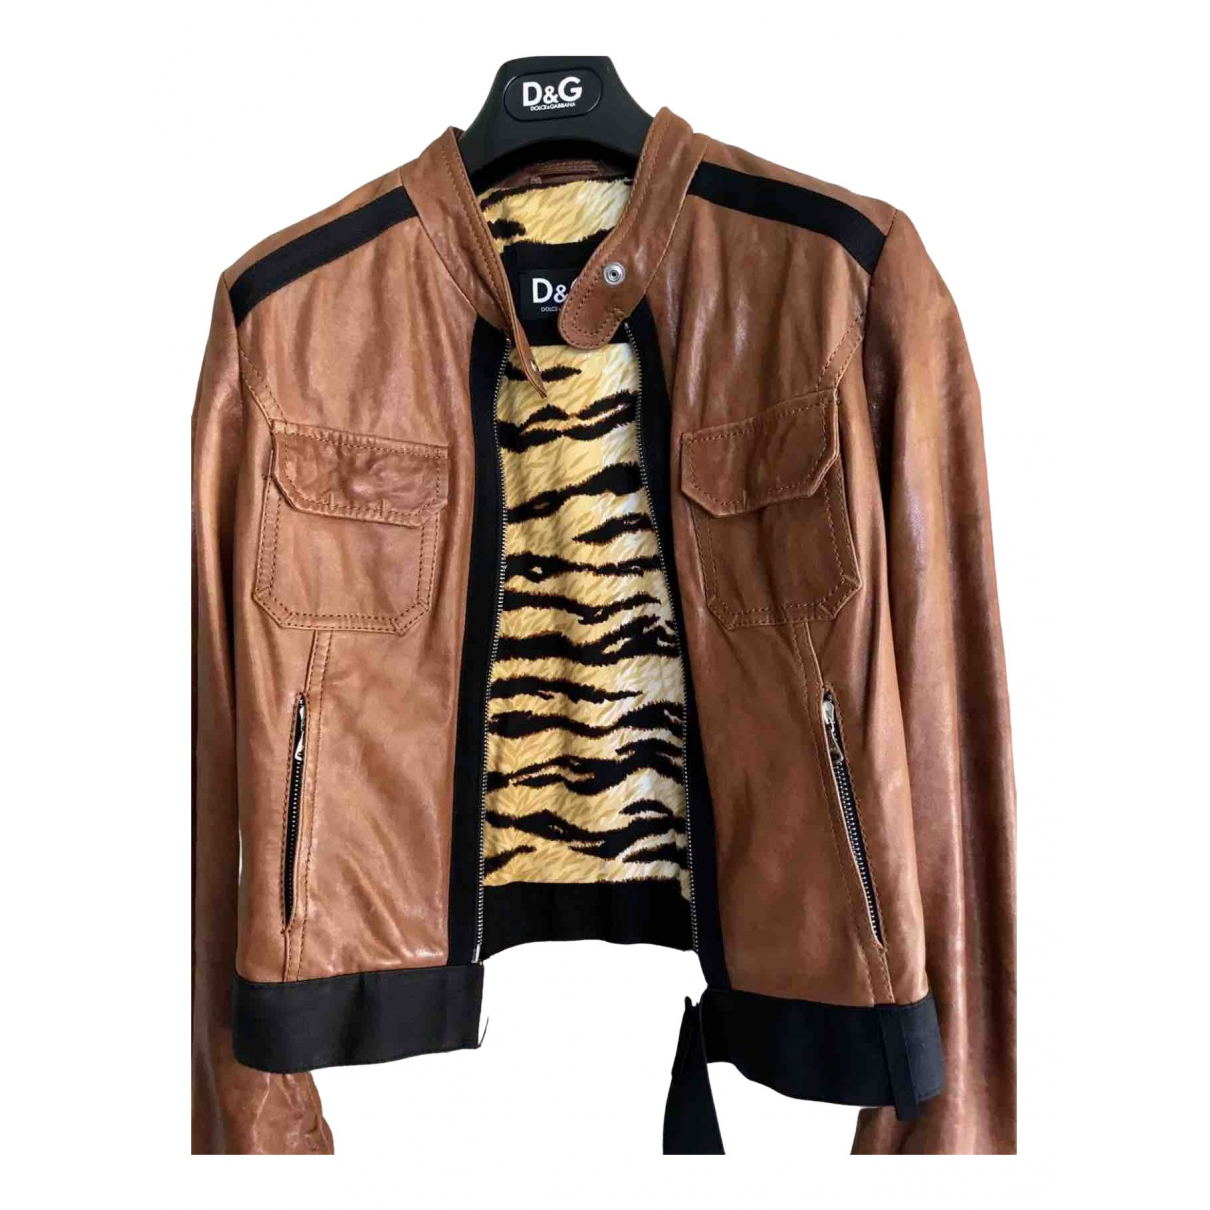 D&g N Camel Leather Leather jacket for Women 42 IT